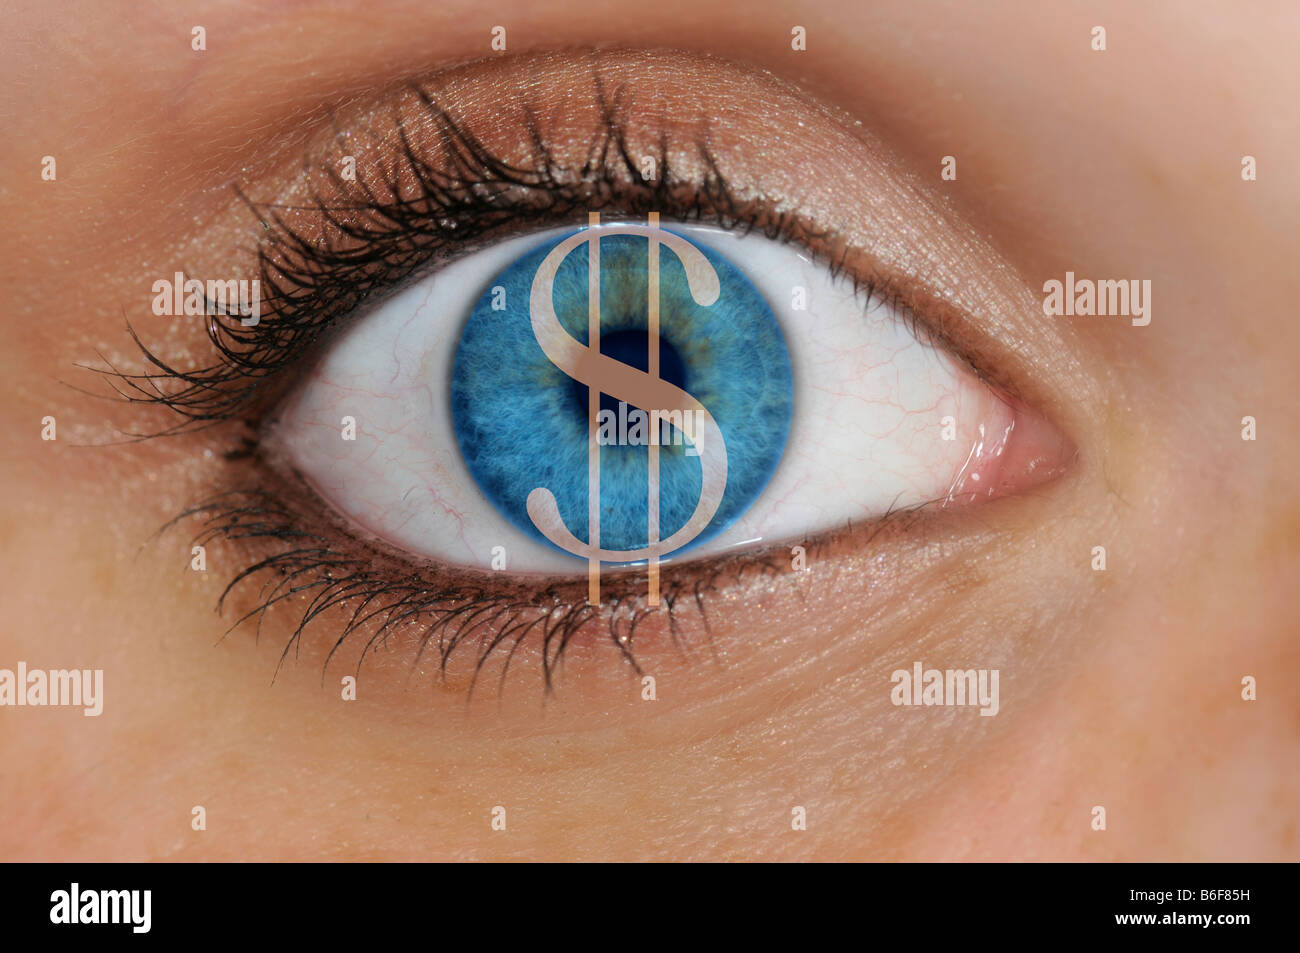 Close-up of a dollar sign over an eye with a light blue iris, symbolizing greed - Stock Image